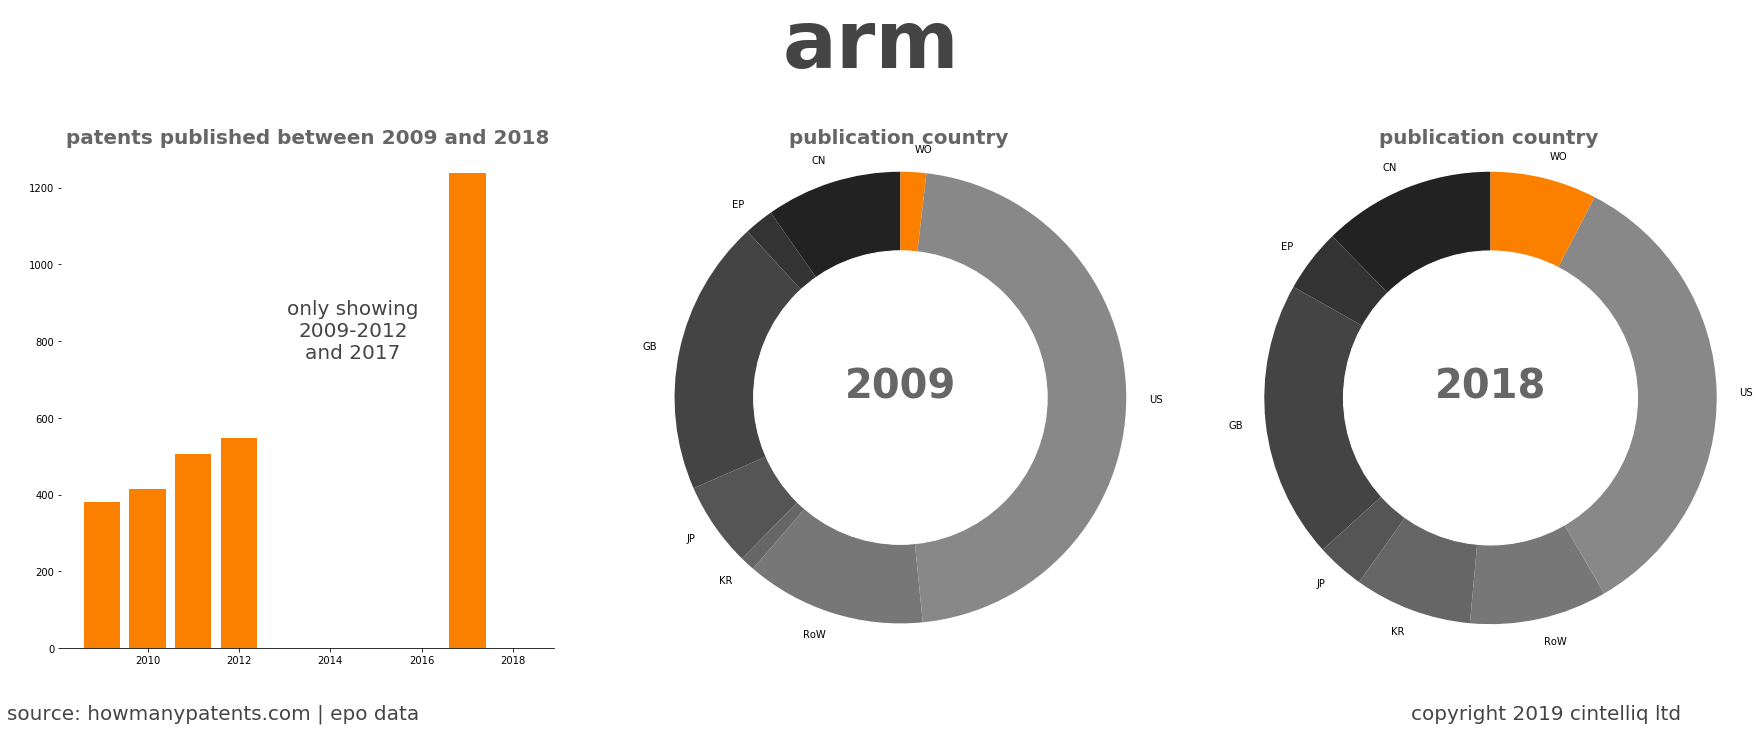 summary of patents for Arm